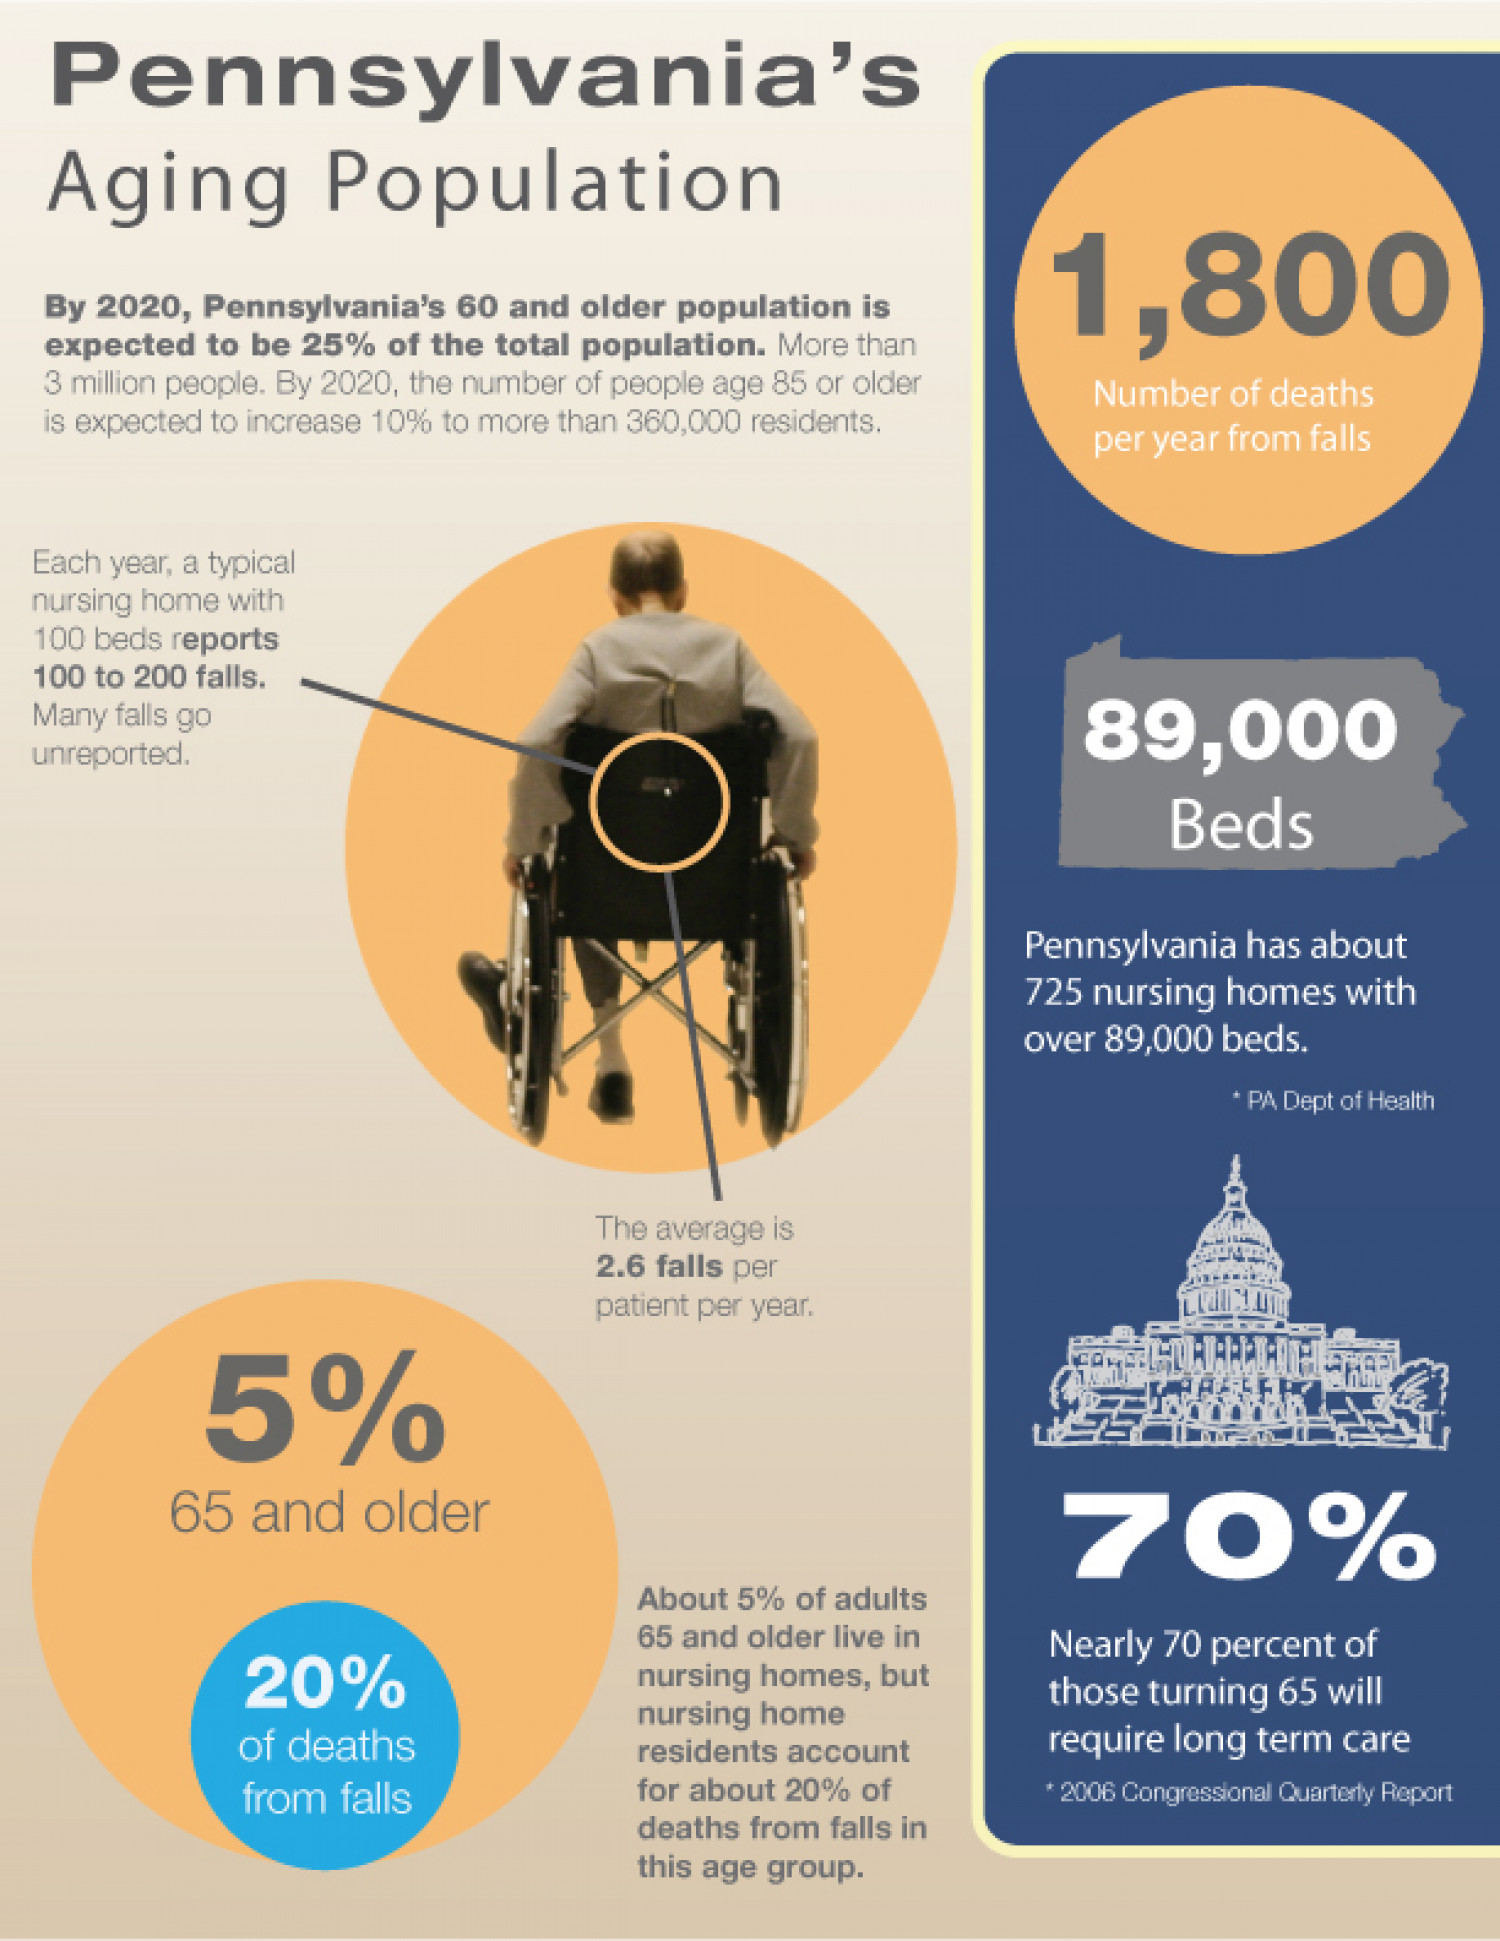 Pennsylvania's Aging Population Infographic